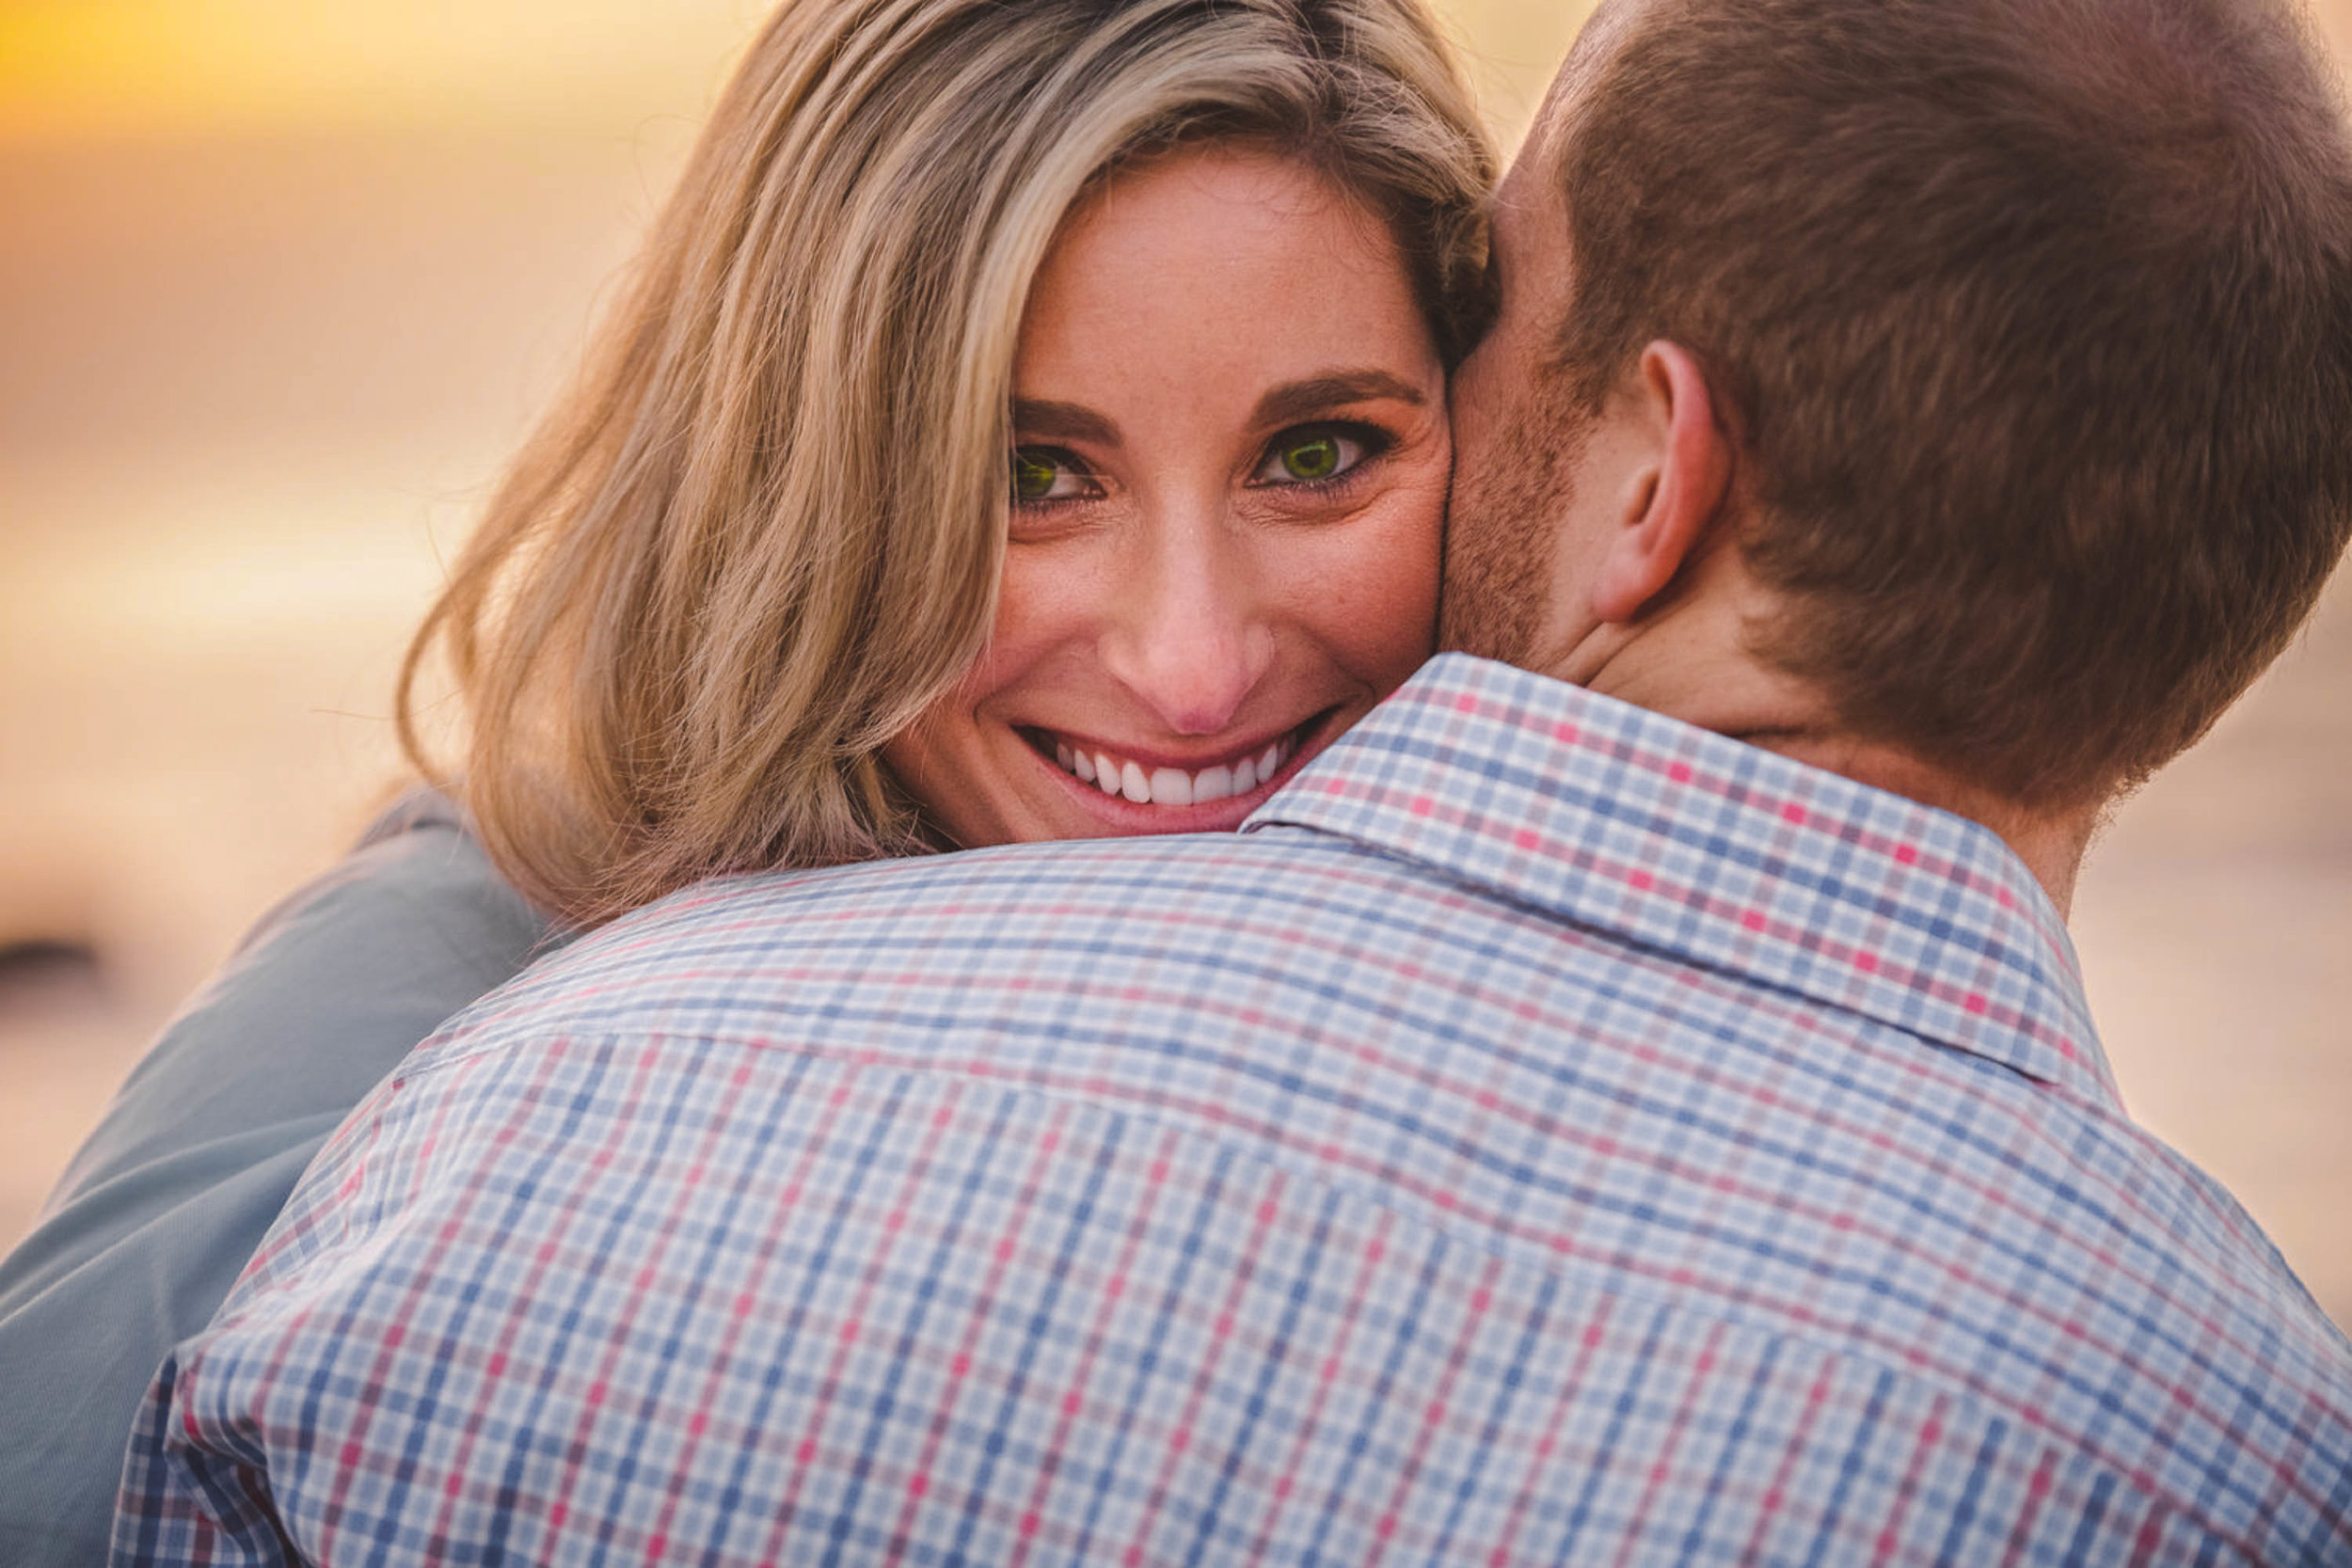 mykewilkenphotography.com engagement-5.jpg